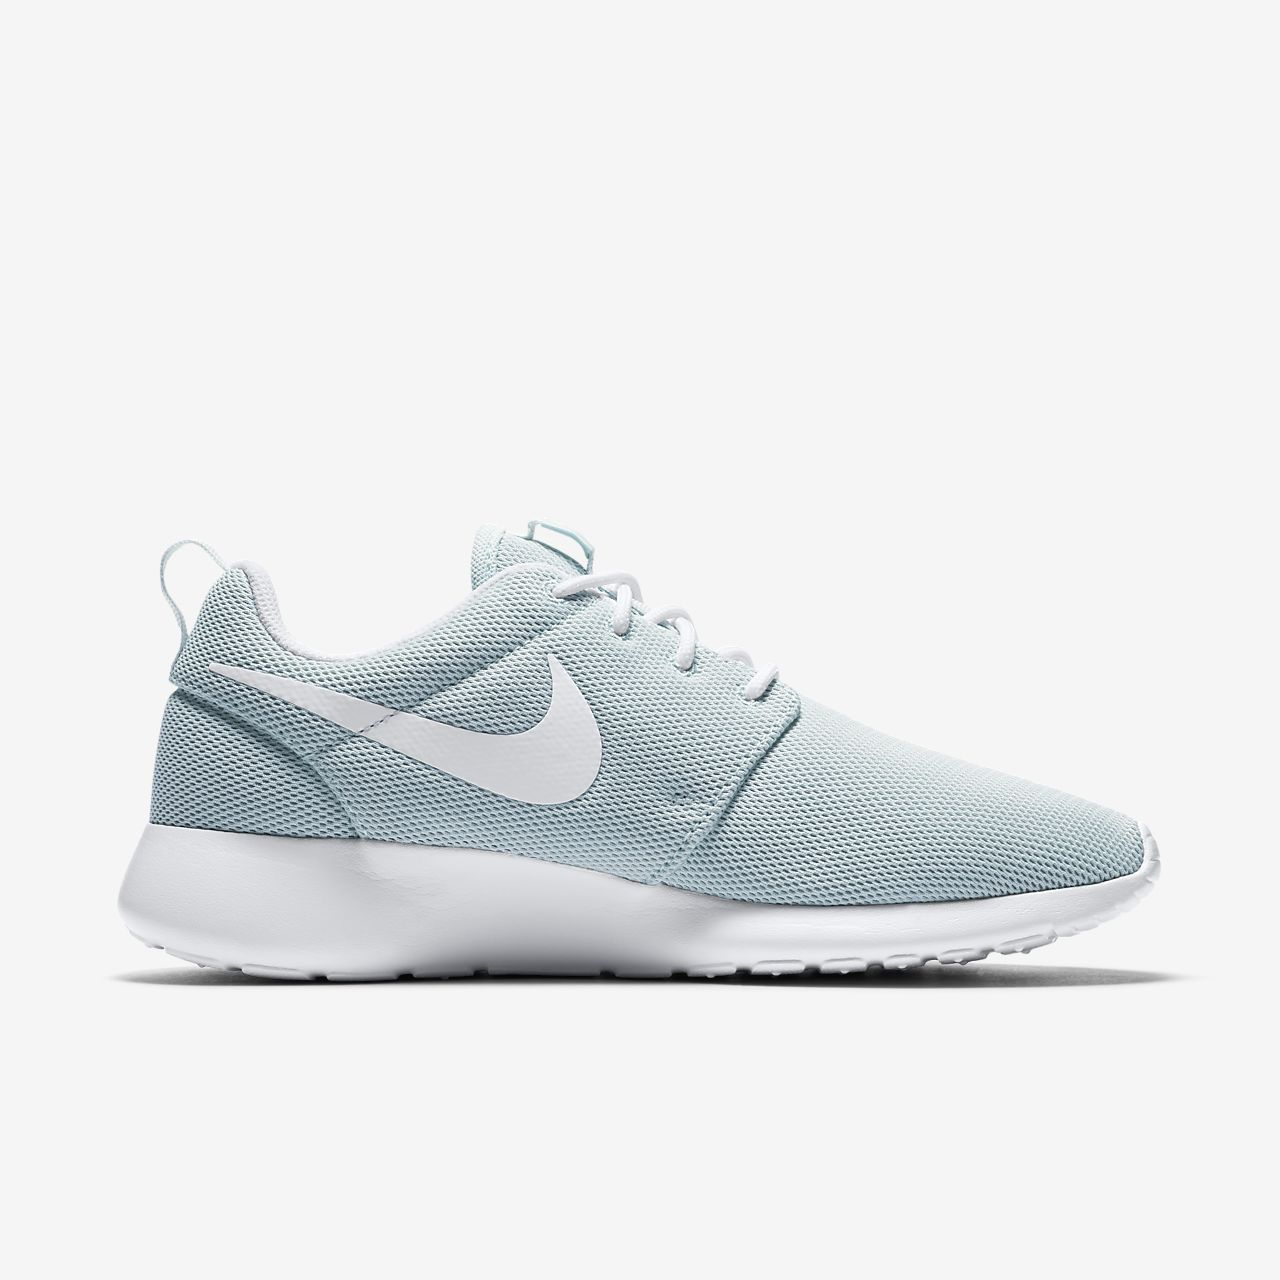 nike shoes roshes boushret 894040